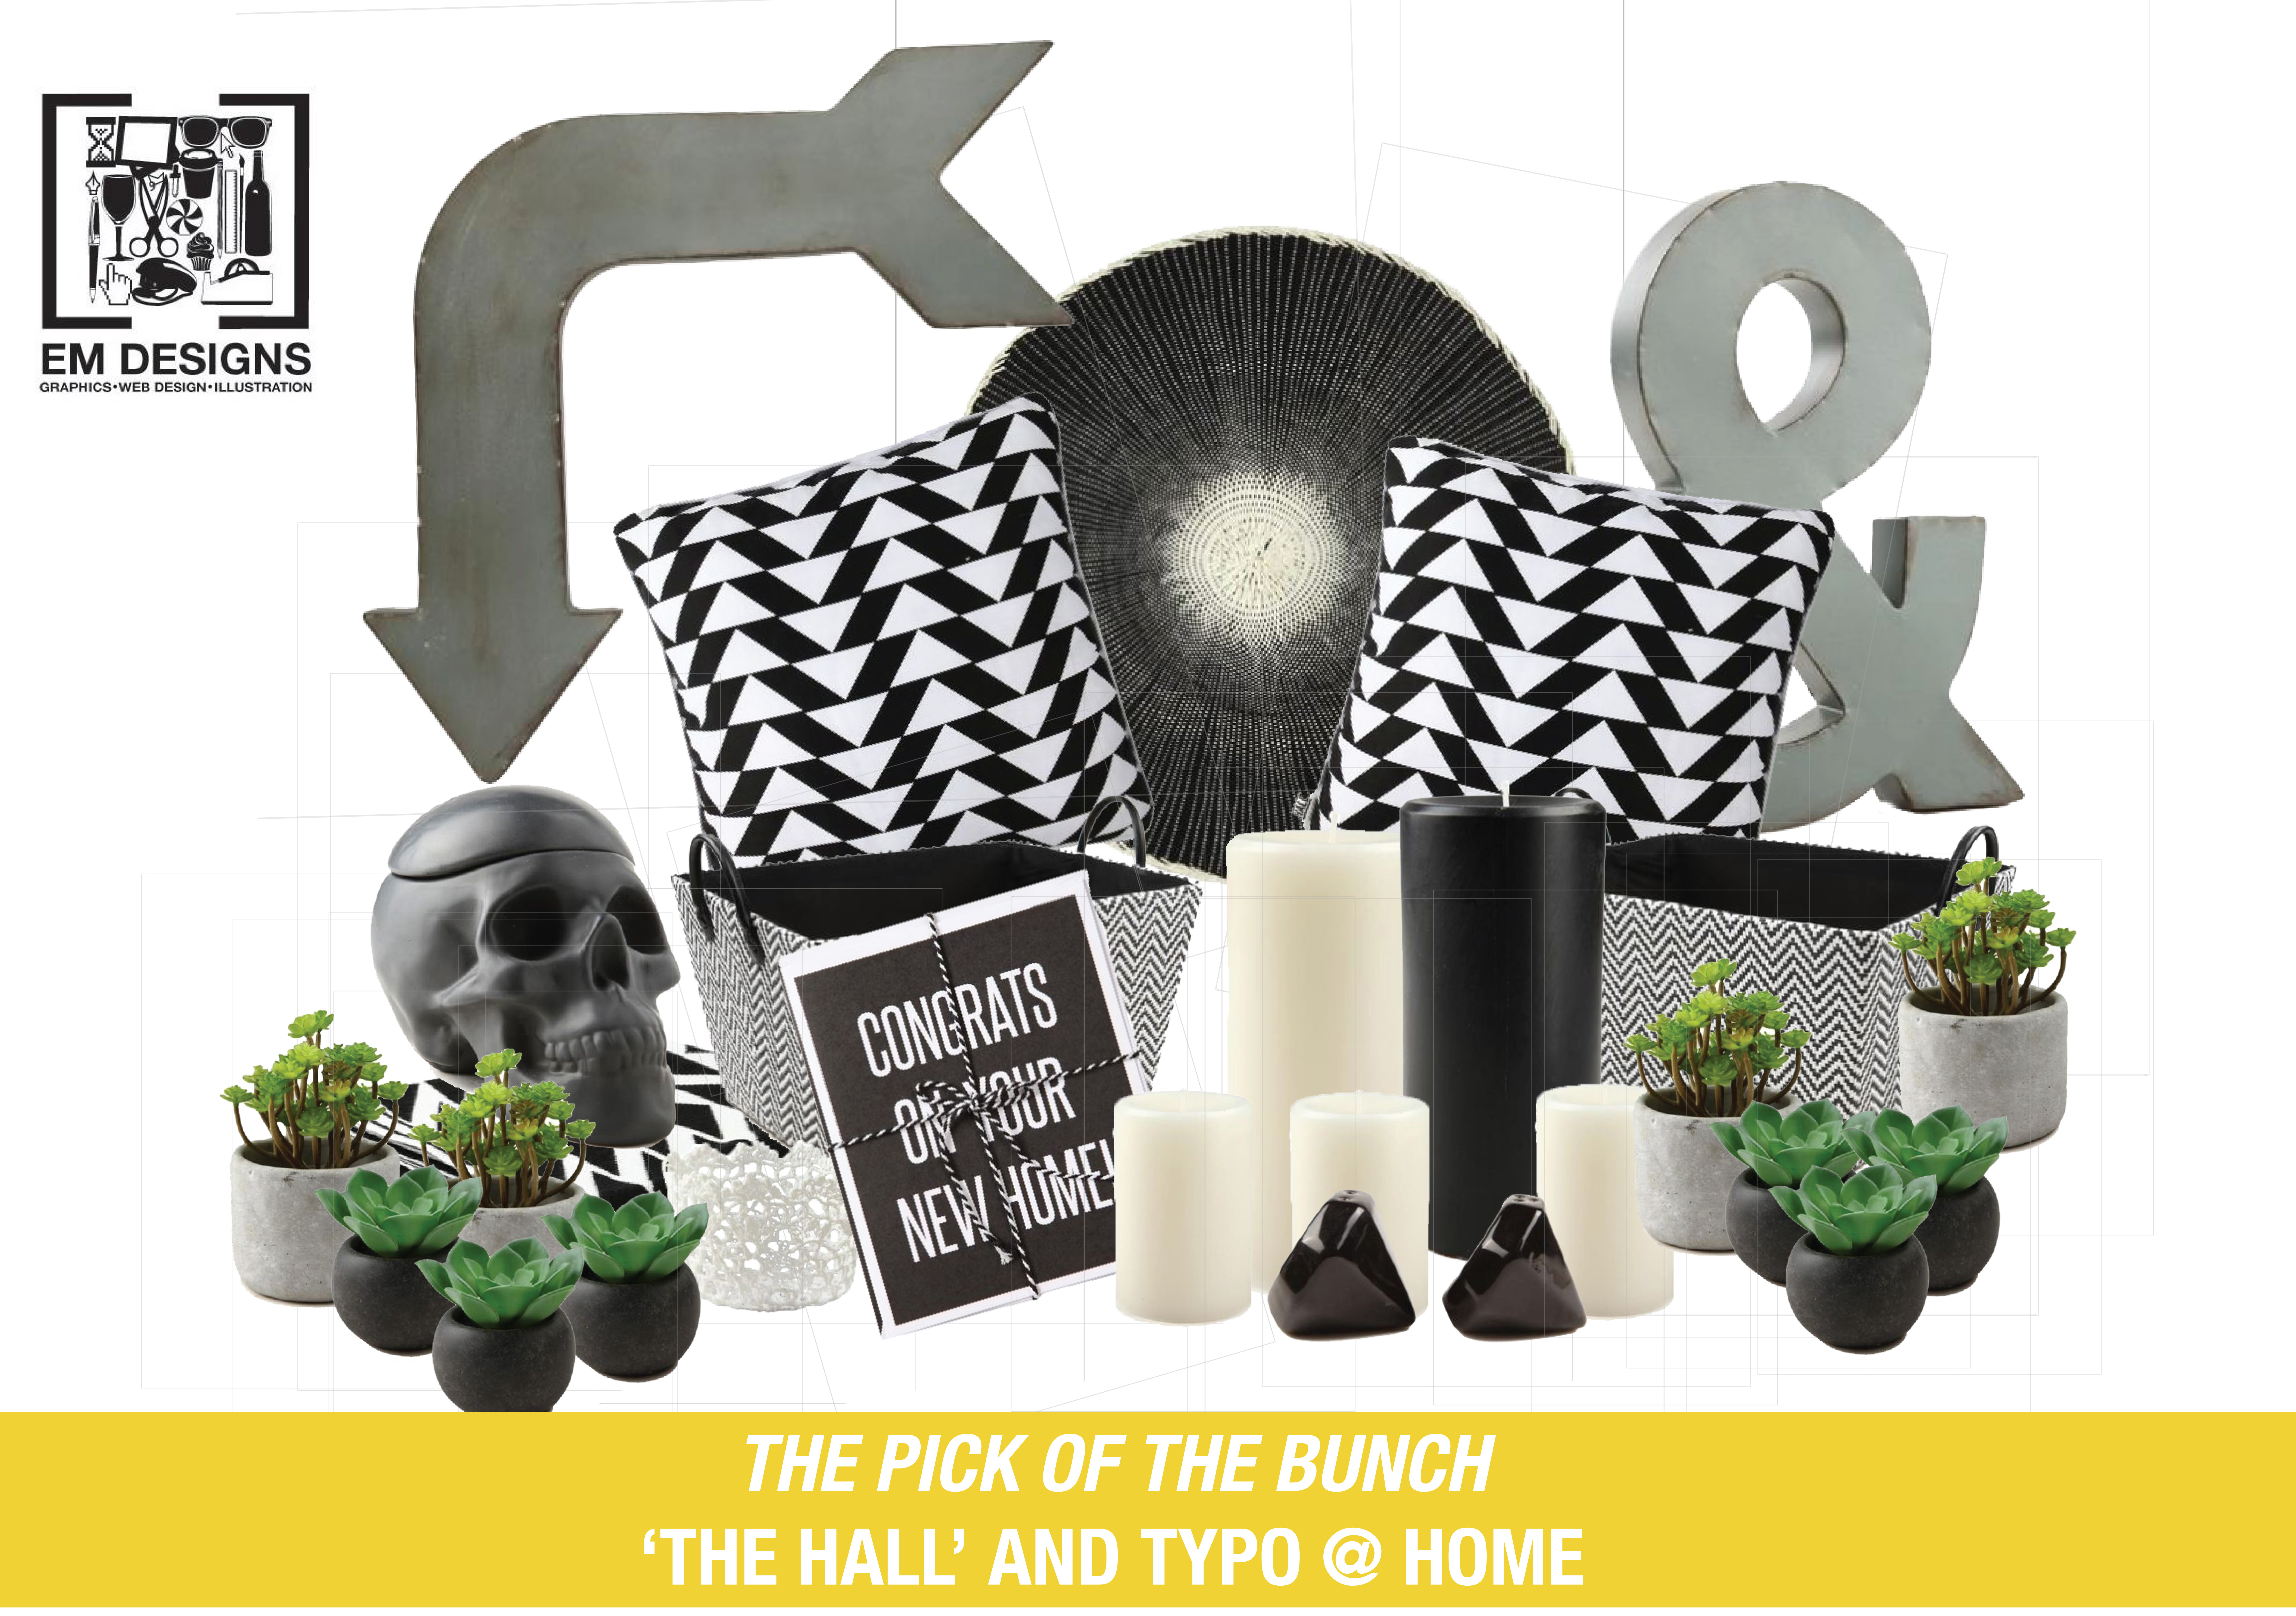 The Home store by Typo best of range